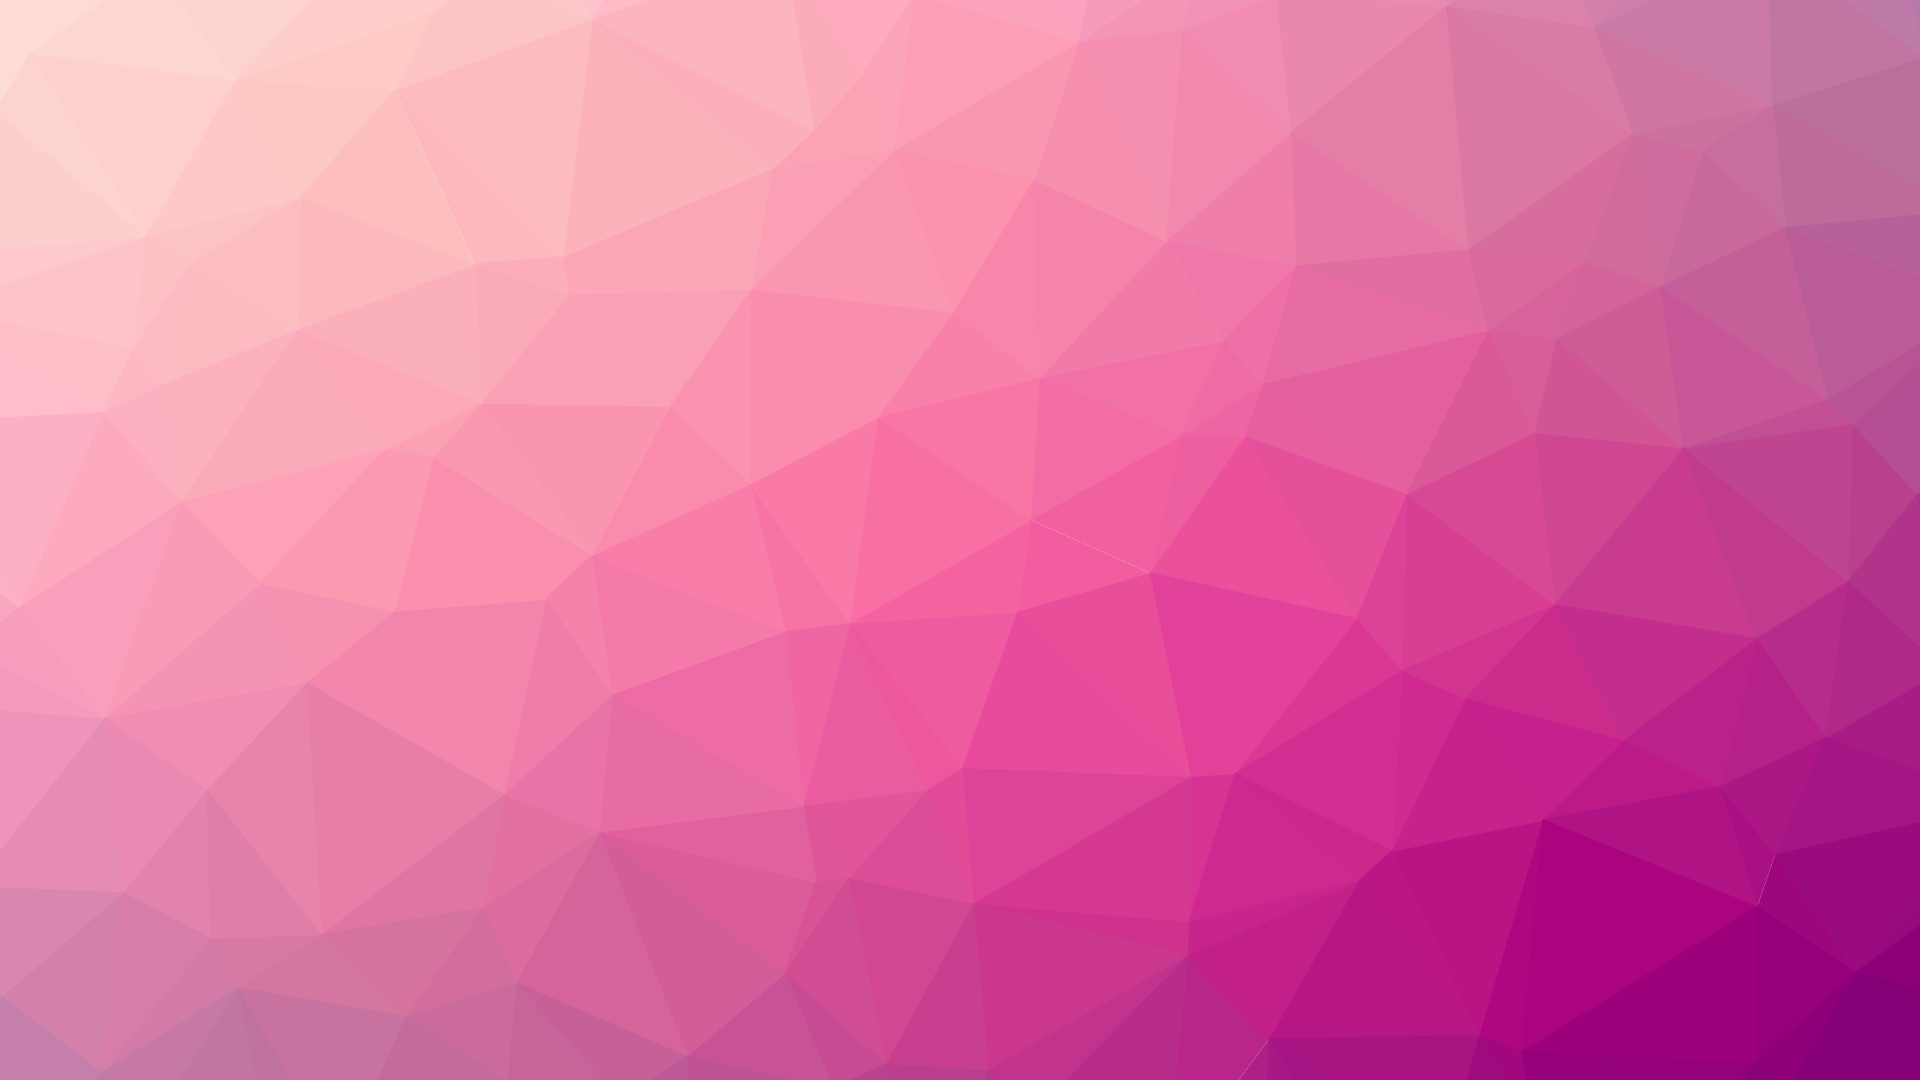 Pink Gradient Hd Wallpaper Background Image 1920x1080 Id